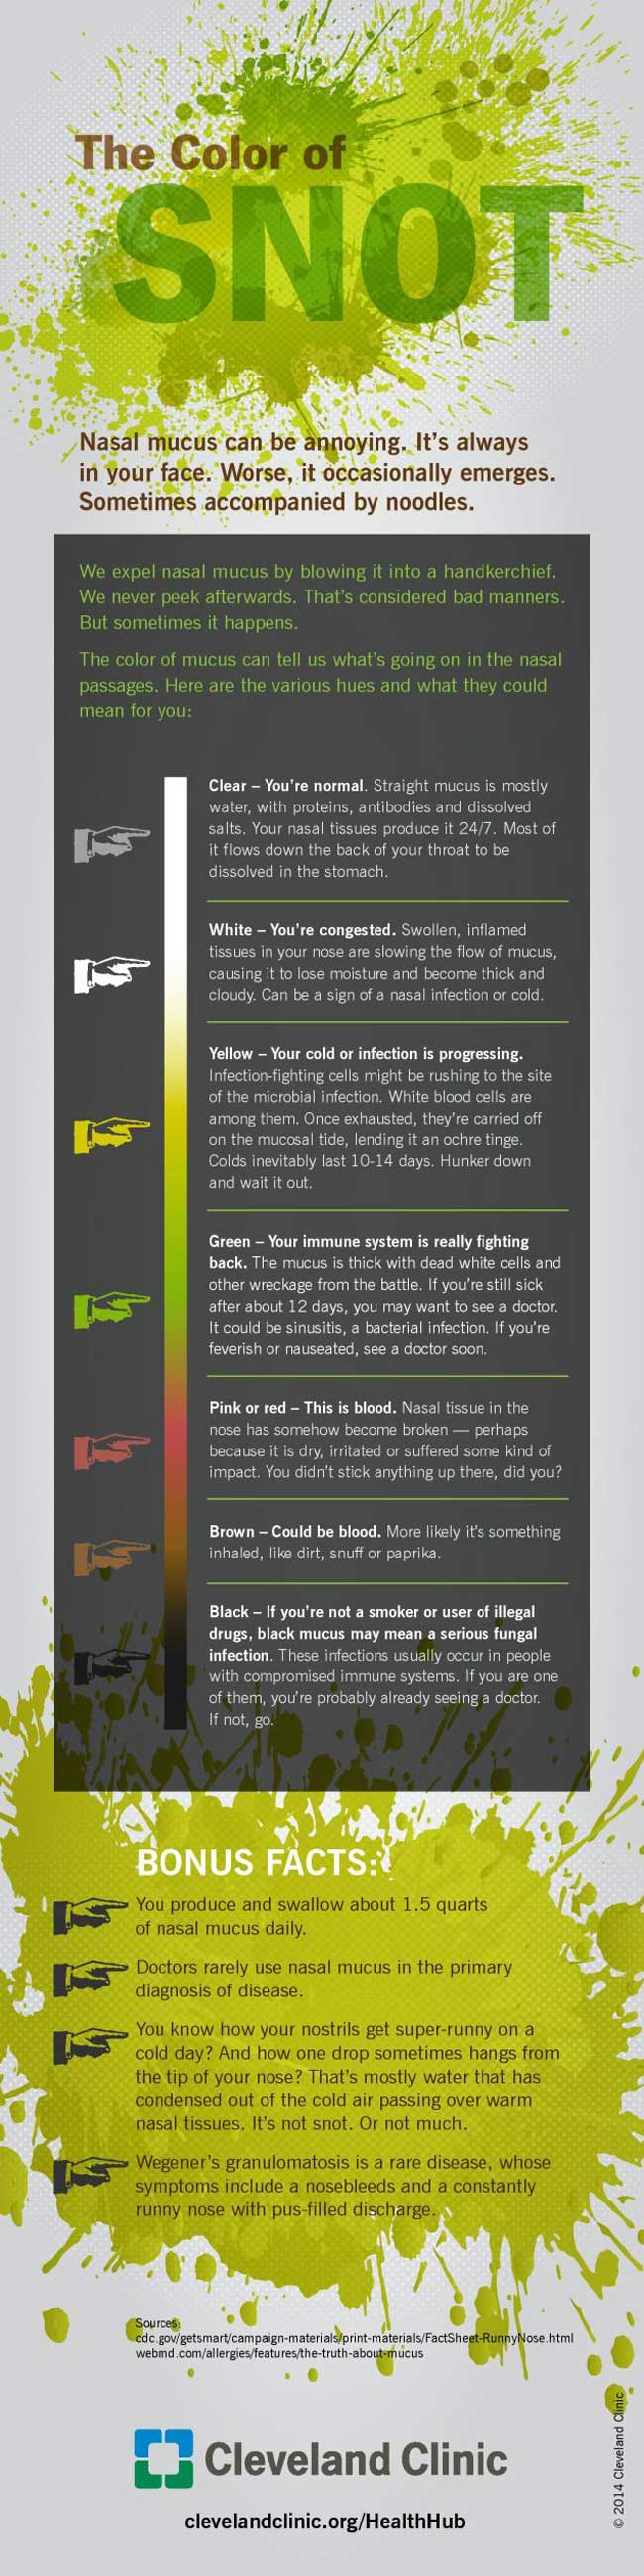 Color of Snot Infographic